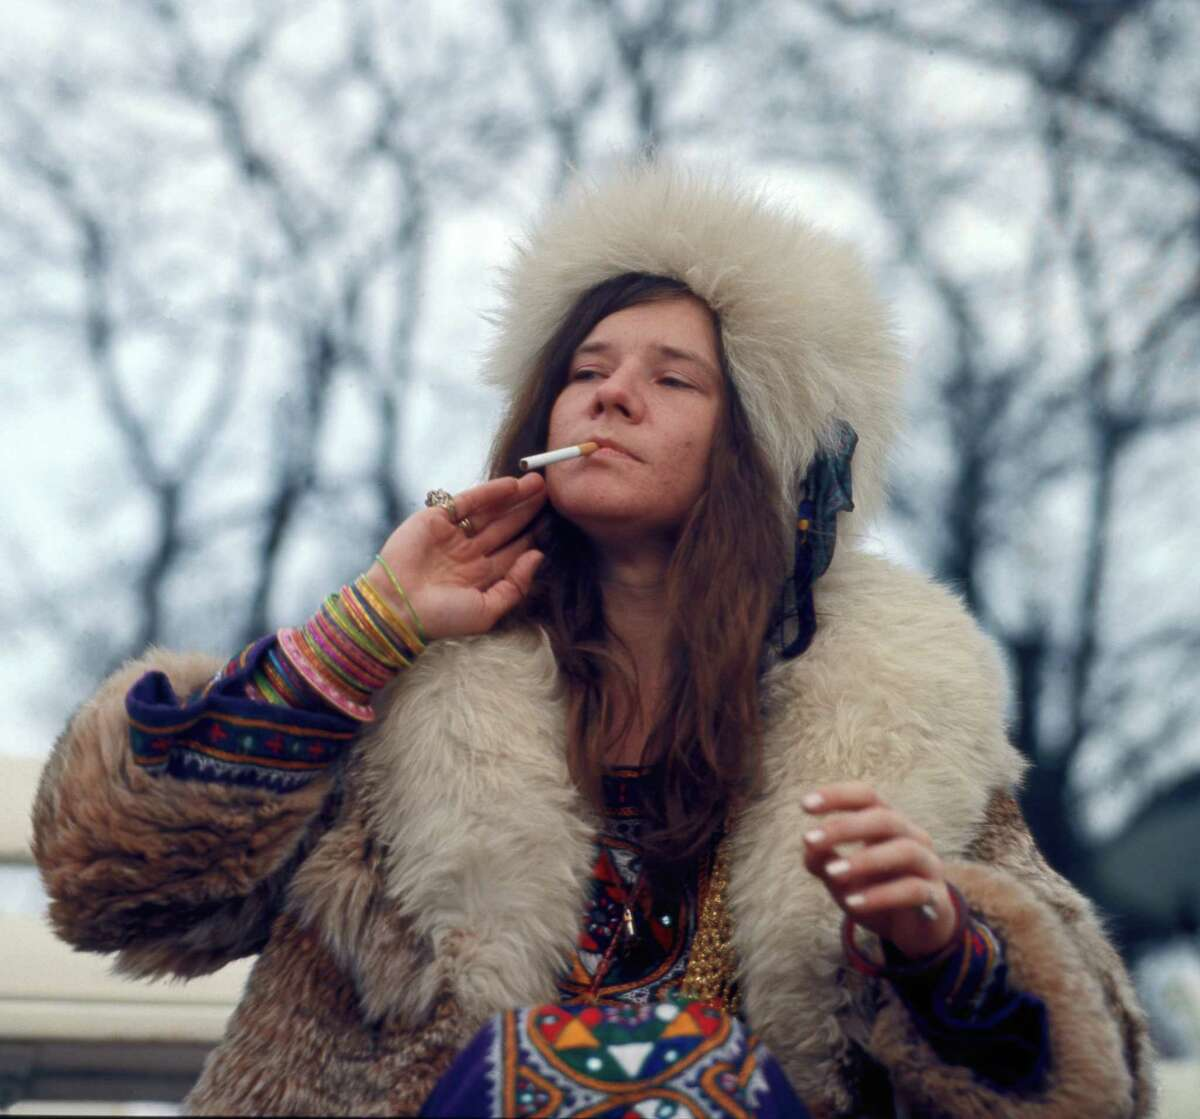 More than any rock star of her generation, Janis Joplin fearlessly vented the emotions of her needy inner girl-child.